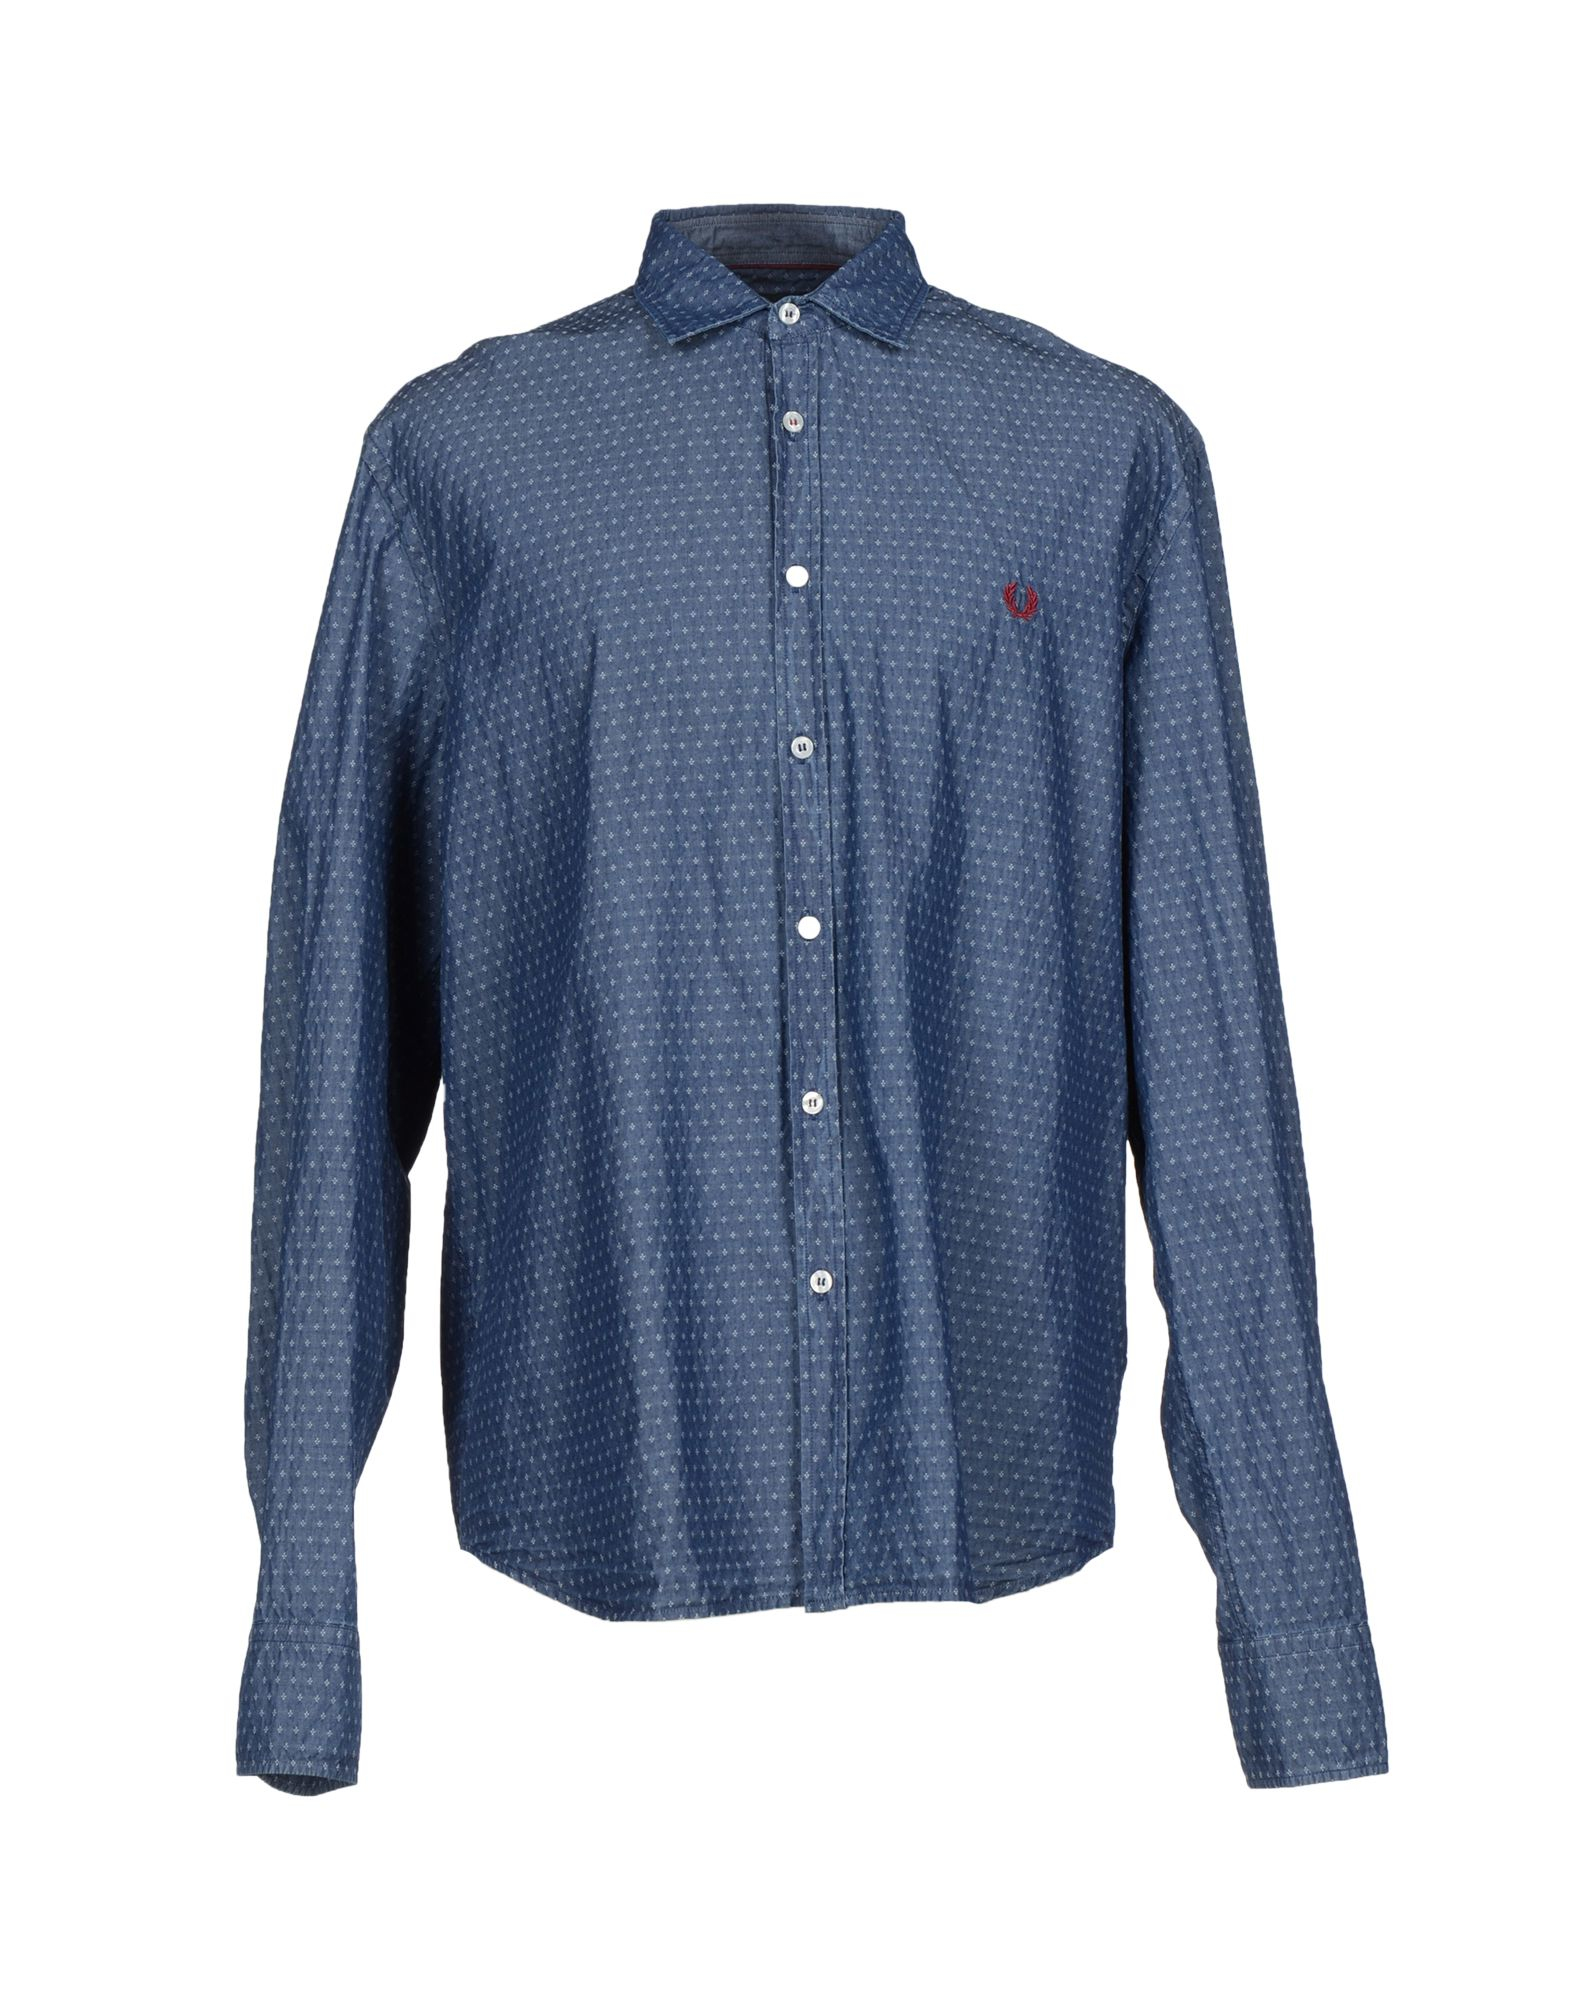 3fdb44444a Lyst - Fred Perry Denim Shirt in Blue for Men